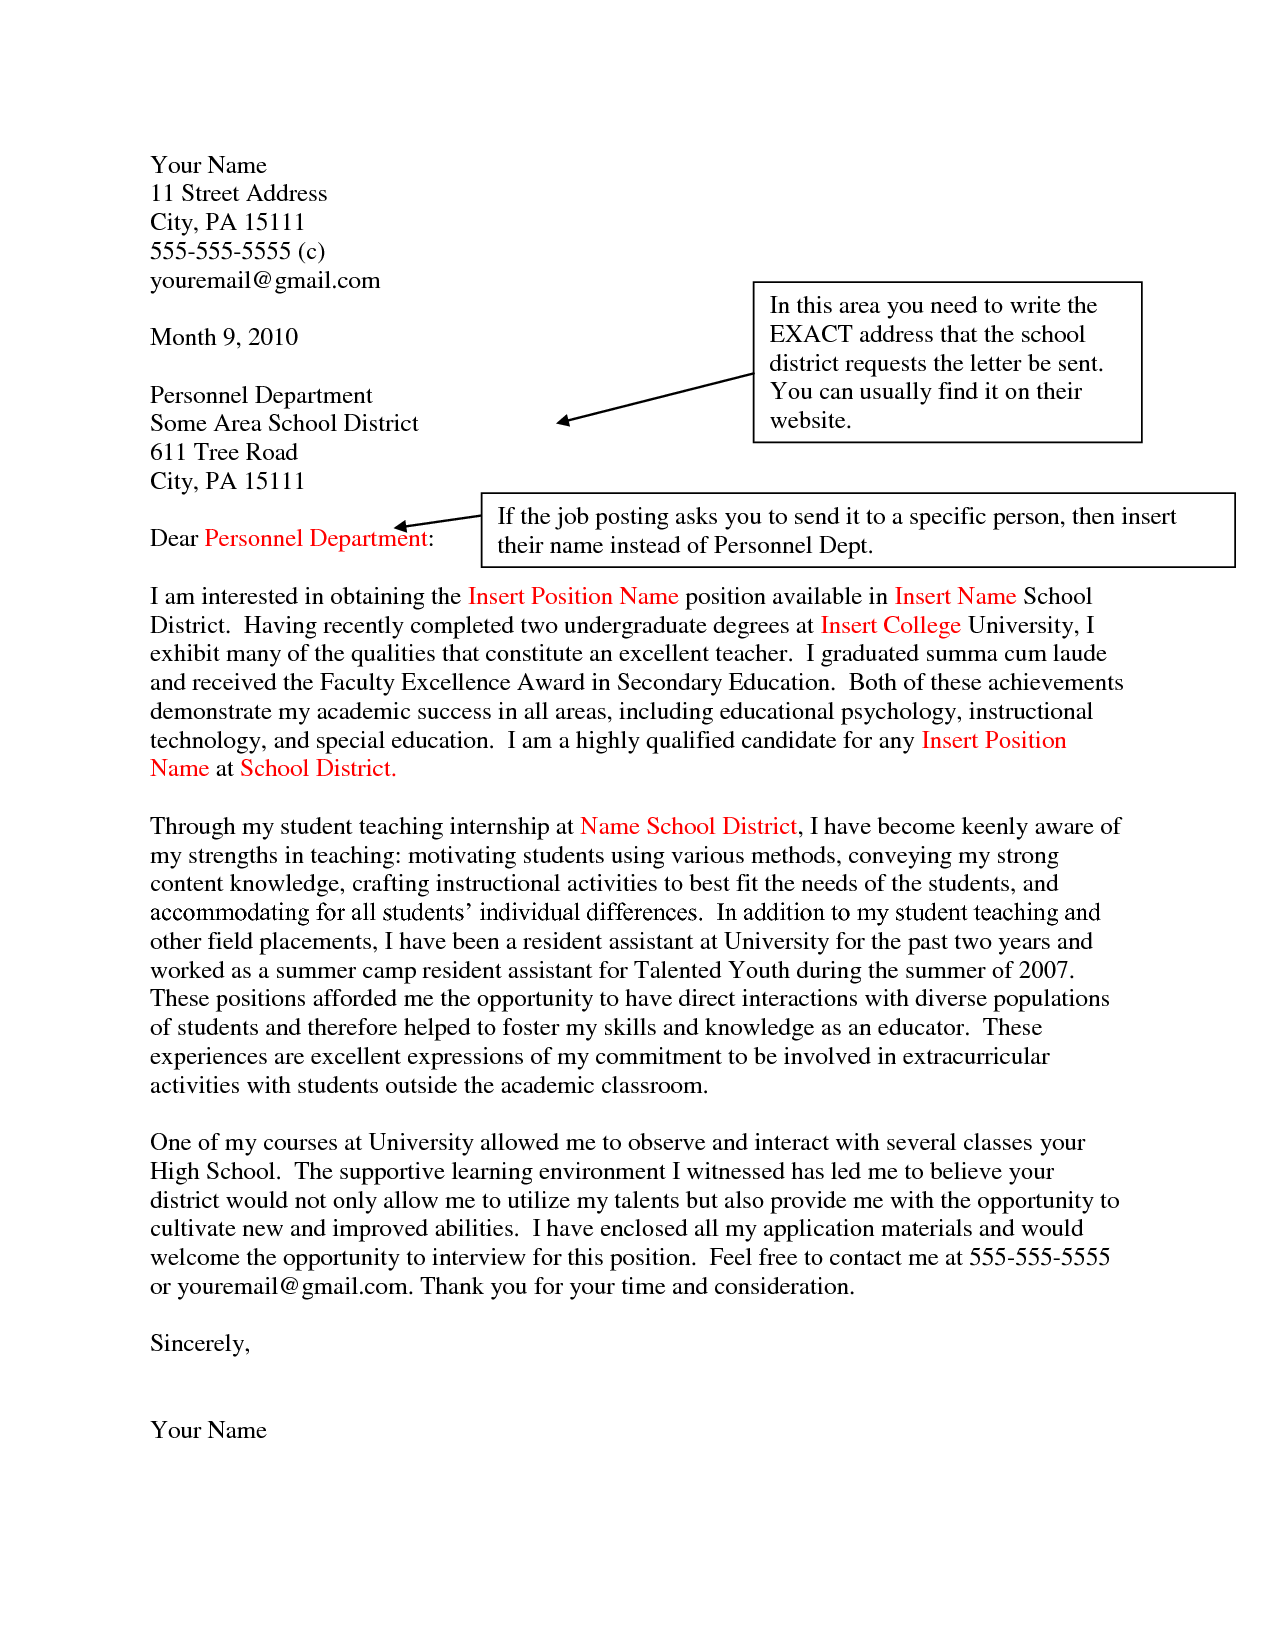 letter of interest cover letter sample letters of interest for job